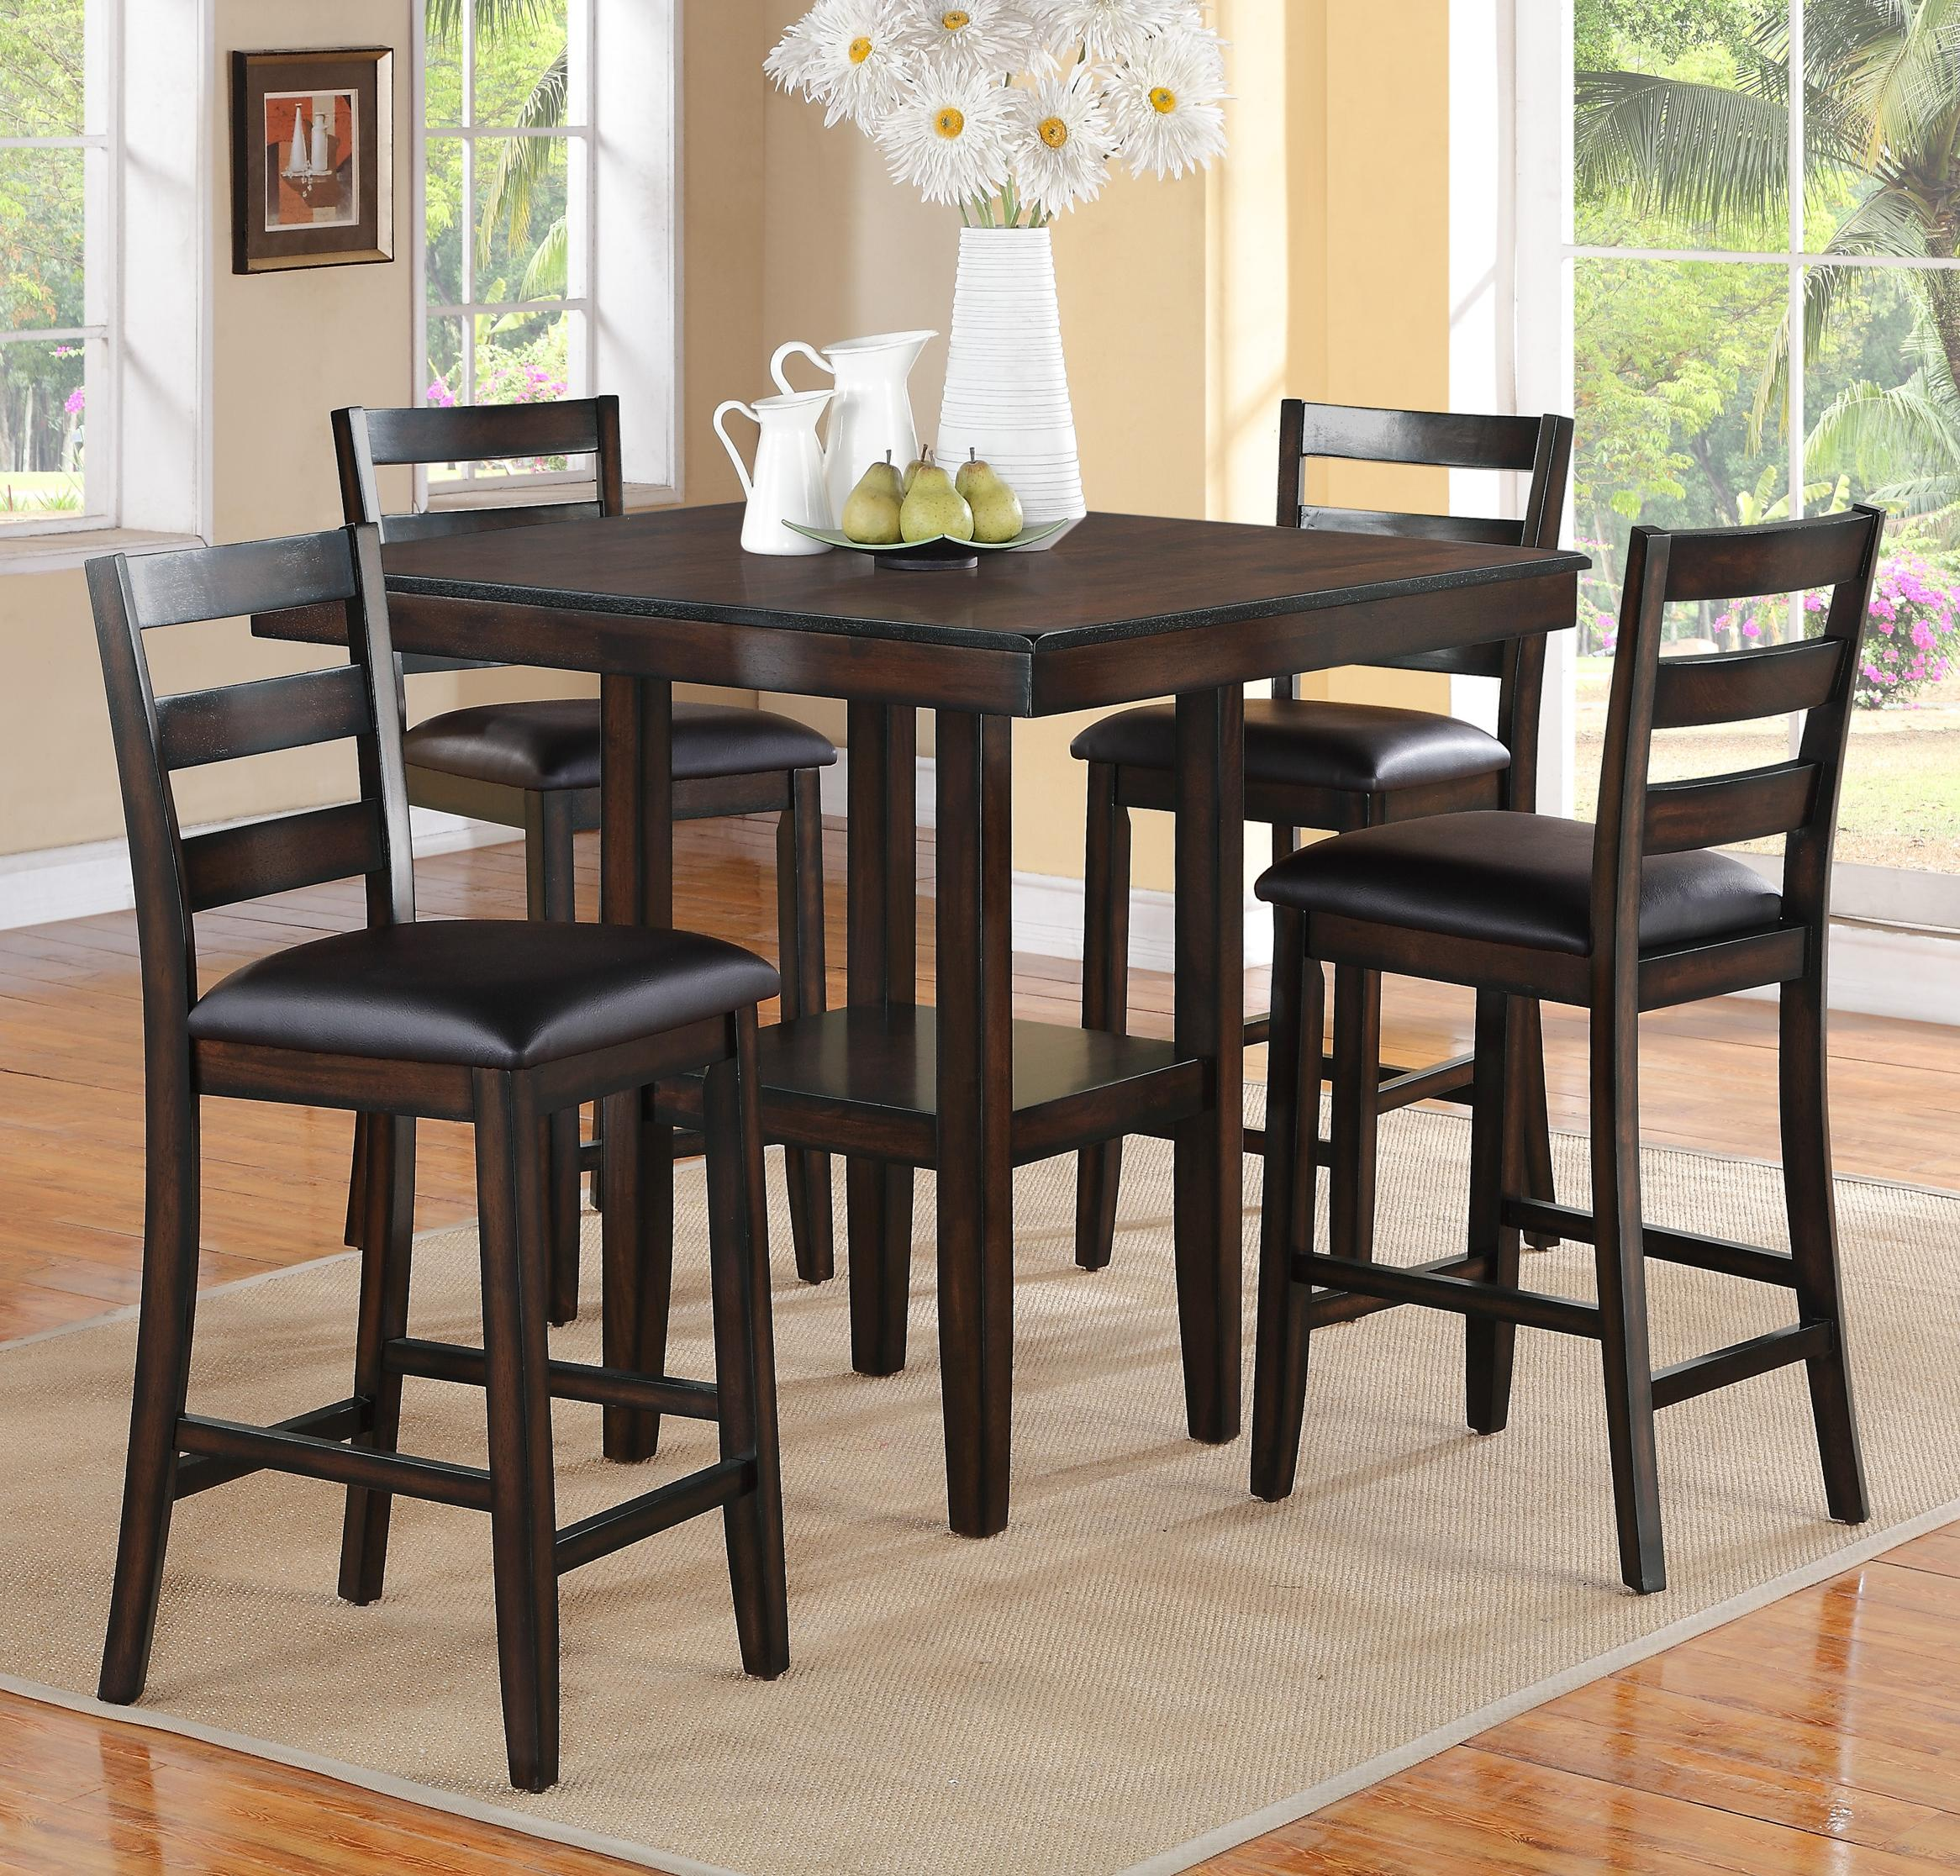 High Bar Tables Perth Crown Mark Tahoe 2630set 5 Piece Counter Height Table And